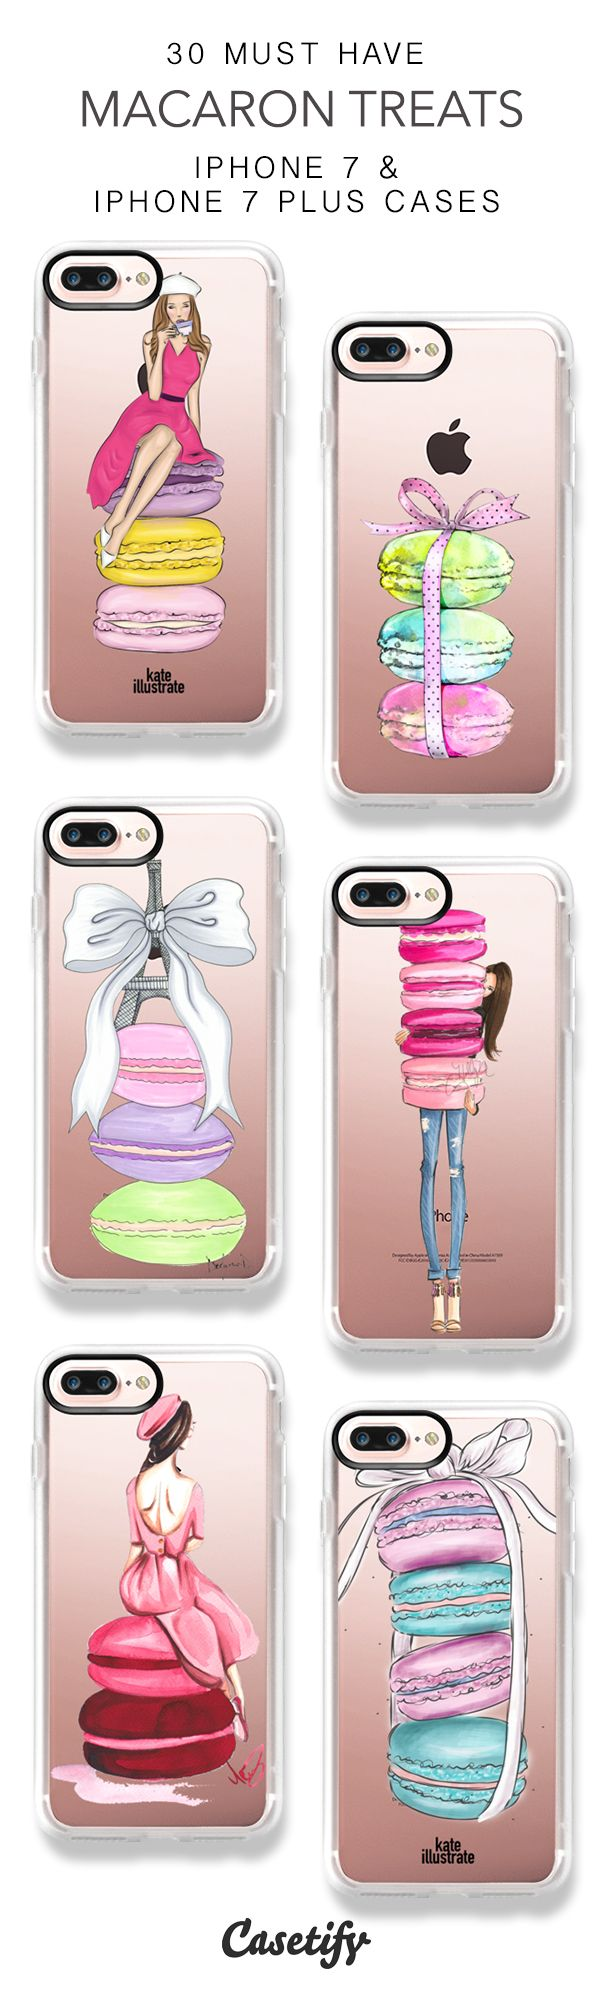 30 Must Have Macaron Treats iPhone 7 Cases and iPhone 7 Plus Cases. More Sweet iPhone case here > https://www.casetify.com/collections/top_100_designs#/?vc=59XD0zkieB (scheduled via http://www.tailwindapp.com?utm_source=pinterest&utm_medium=twpin&utm_cont